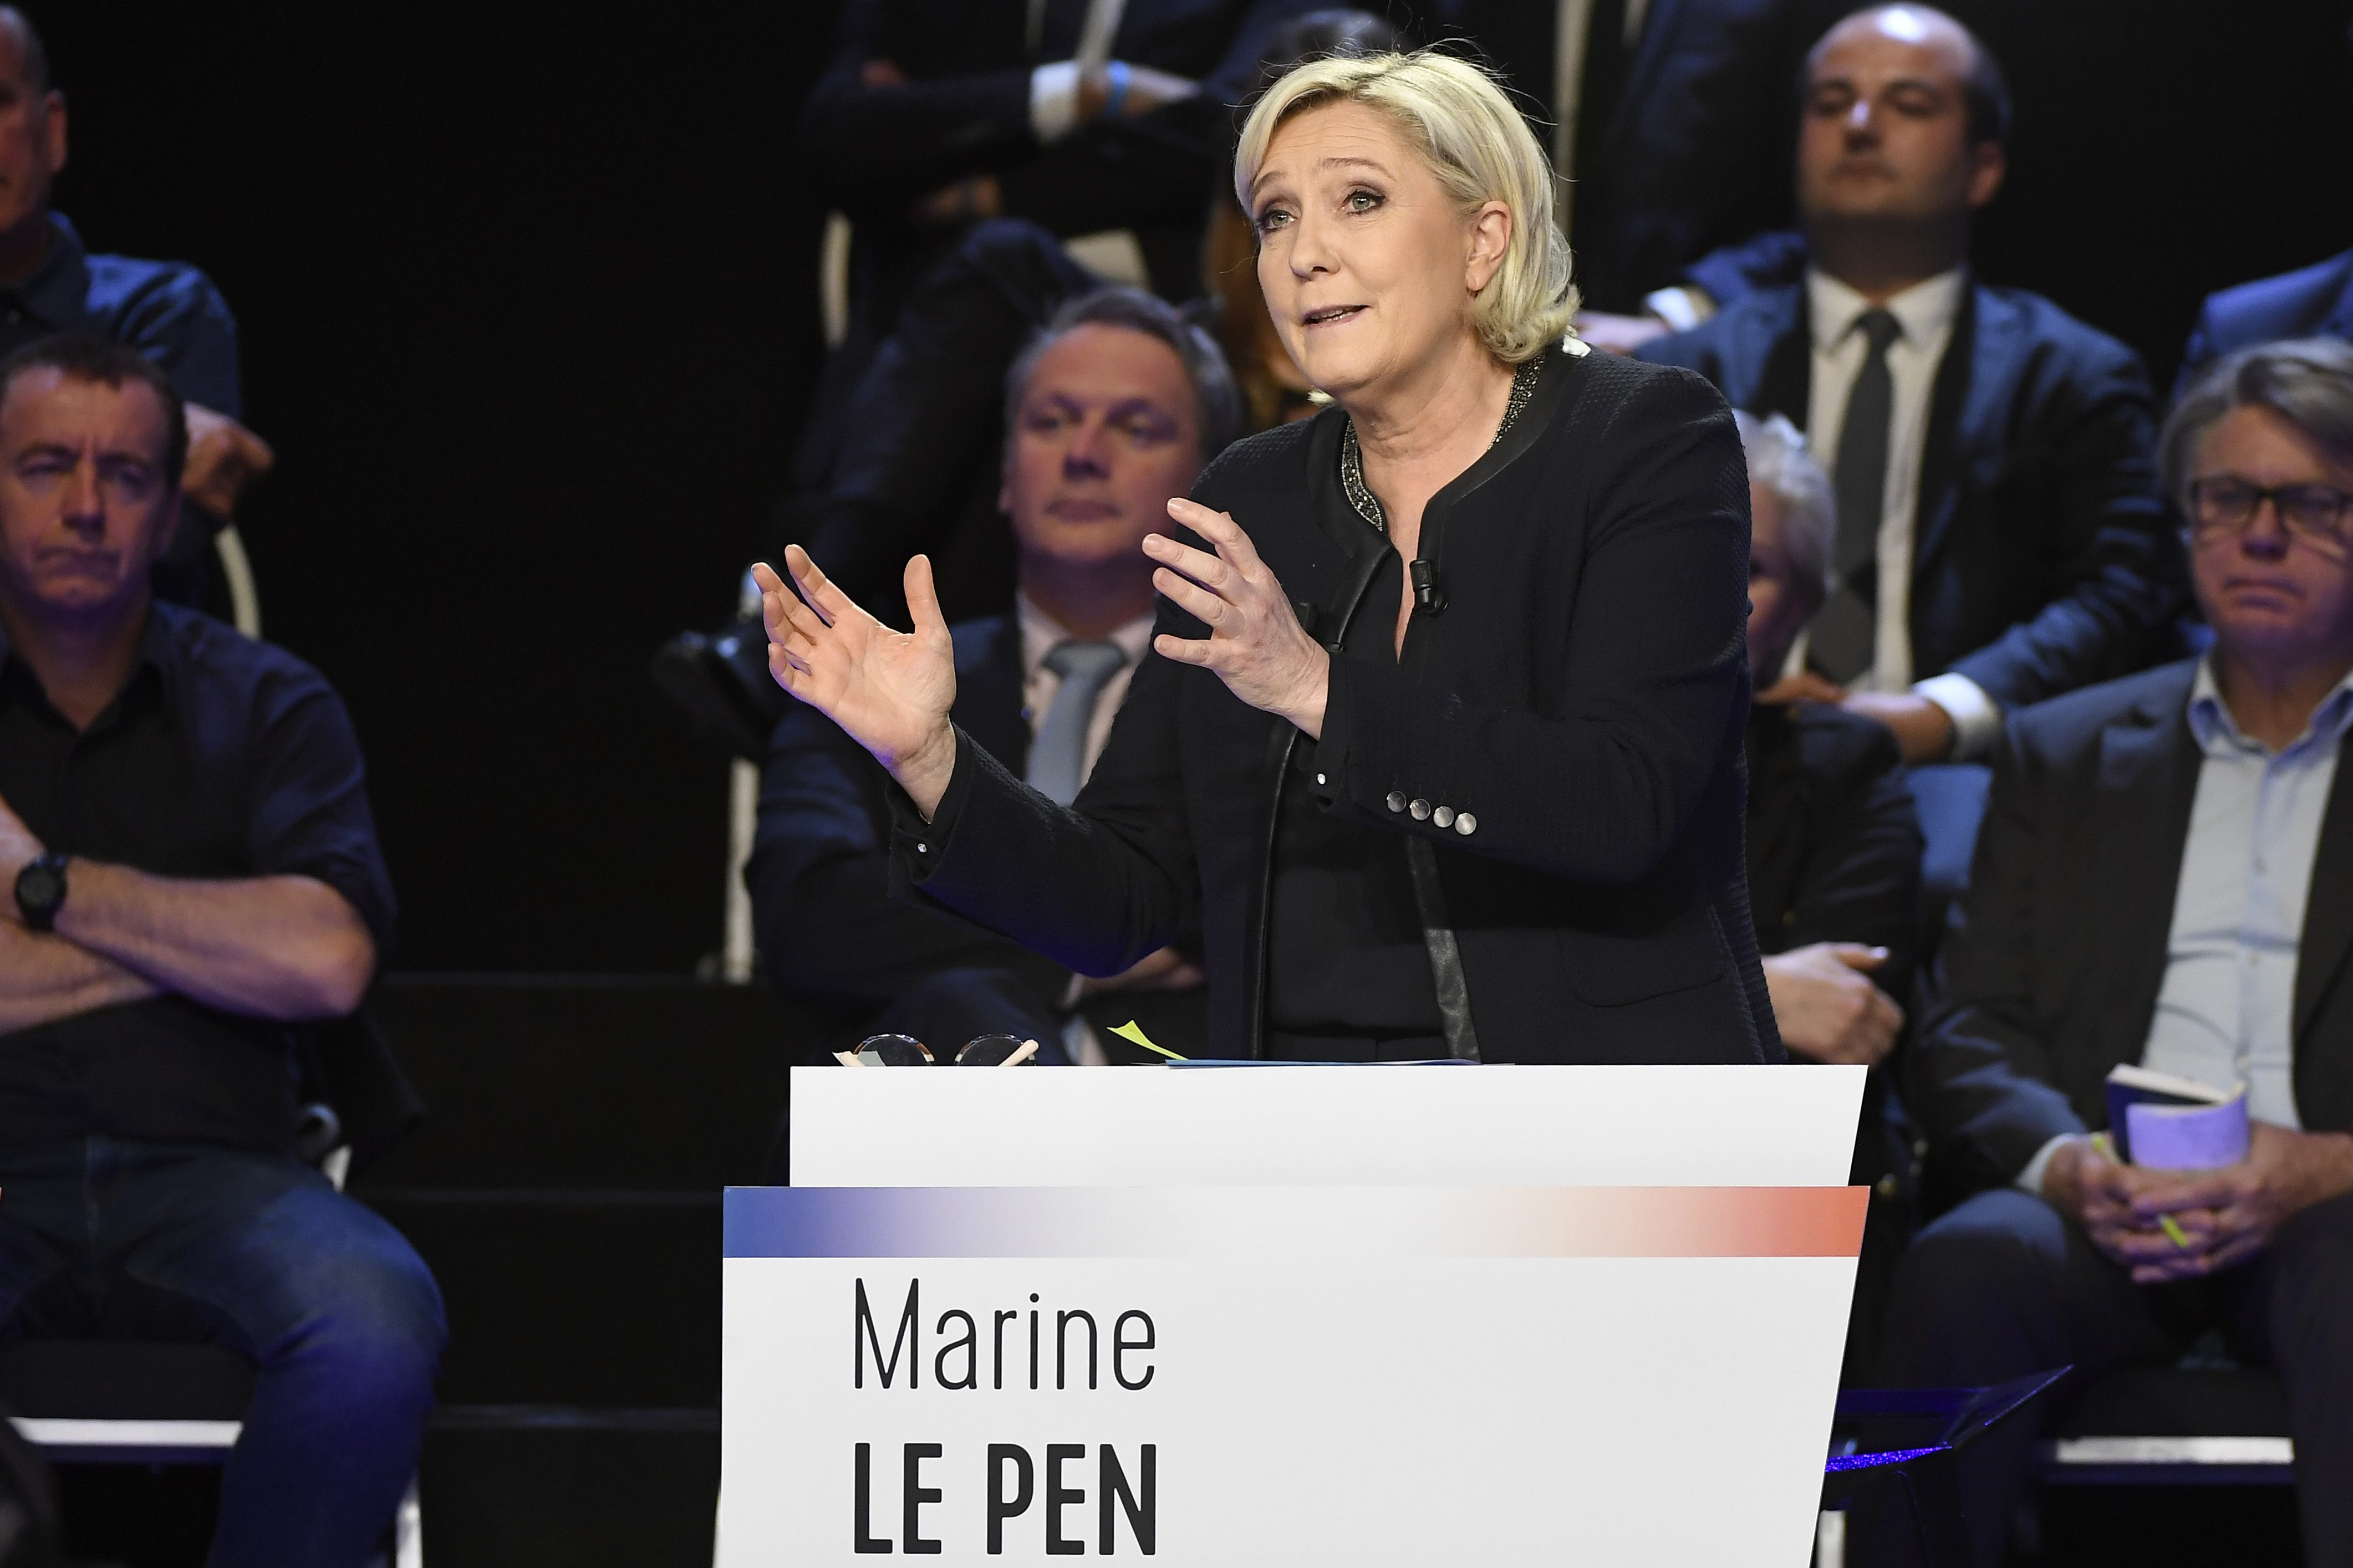 Marine Le Pen of French National Front (FN) attends a prime-time televised debate for the candidates at French 2017 presidential election in La Plaine Saint-Denis, near Paris, France on April 4, 2017. (REUTERS/Lionel Bonaventure/Pool)